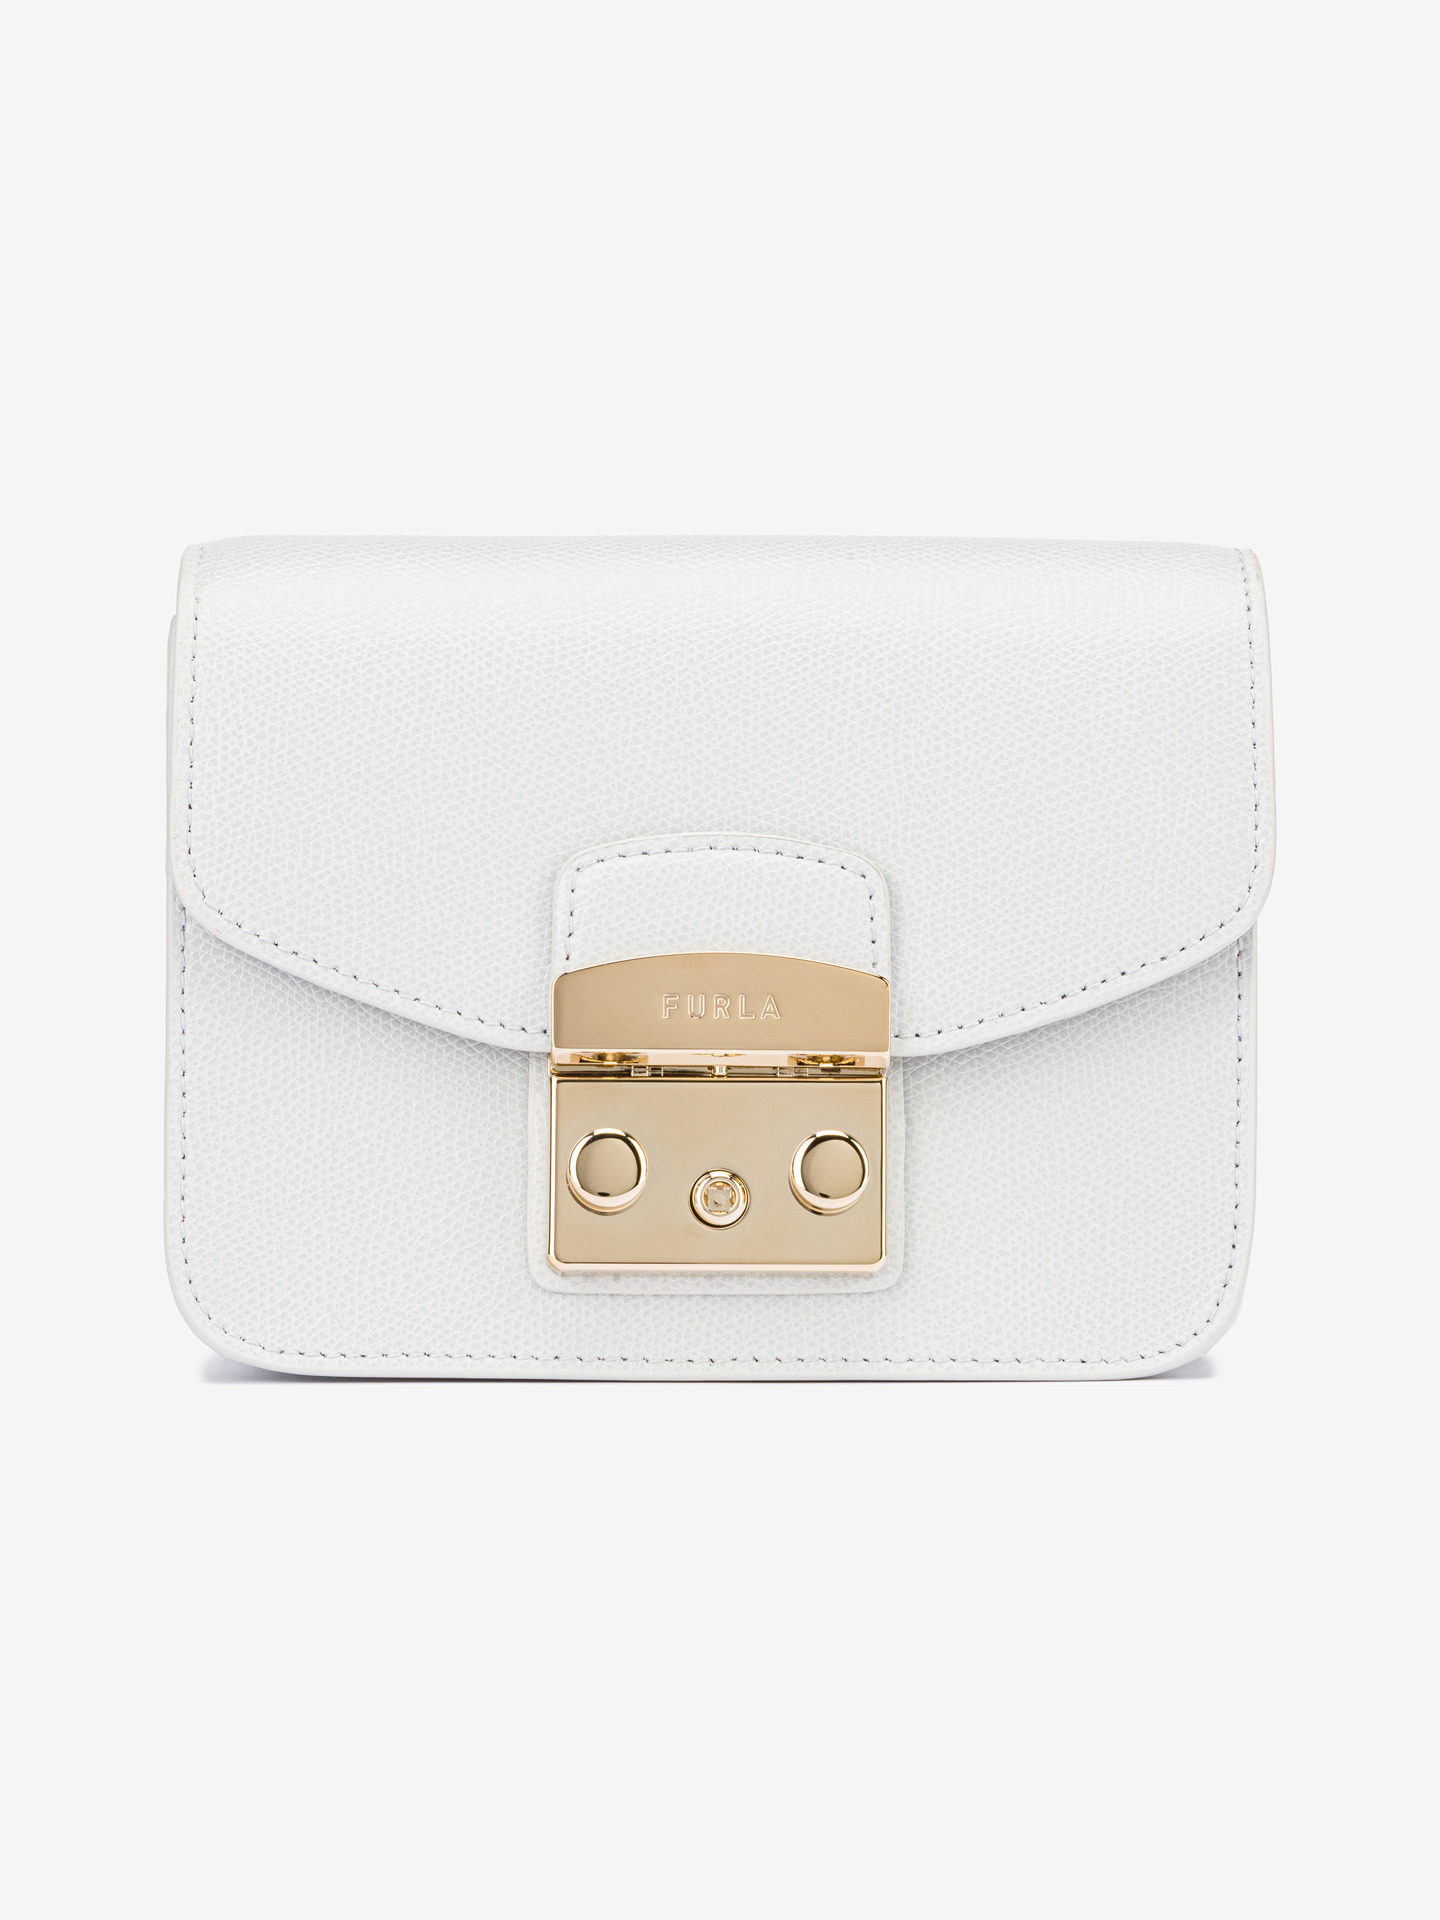 Metropolis Mini Cross body bag Furla Biela